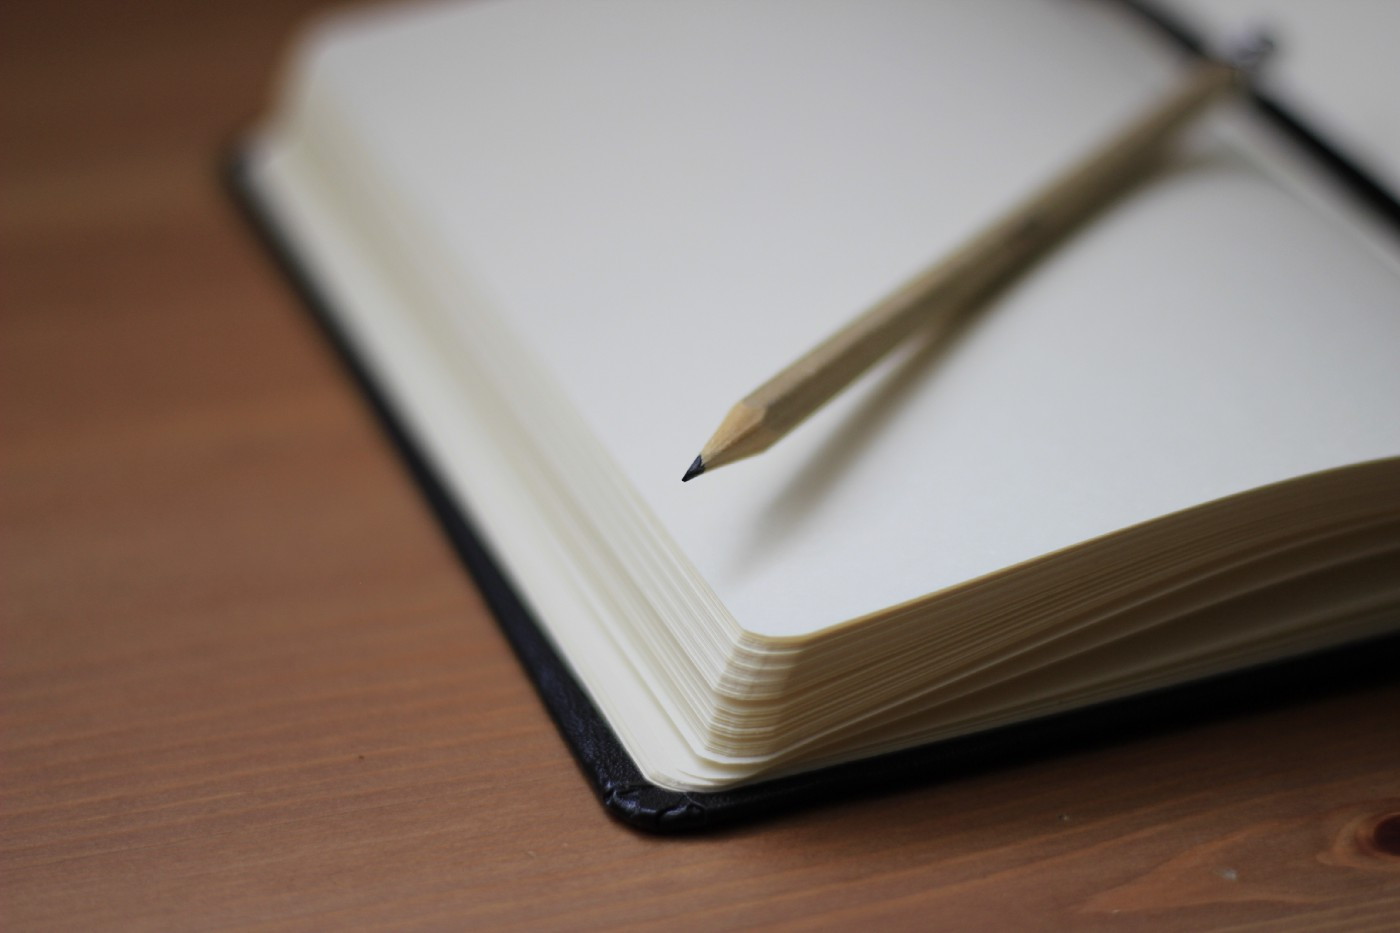 An open notebook with a pencil placed on a blank page.